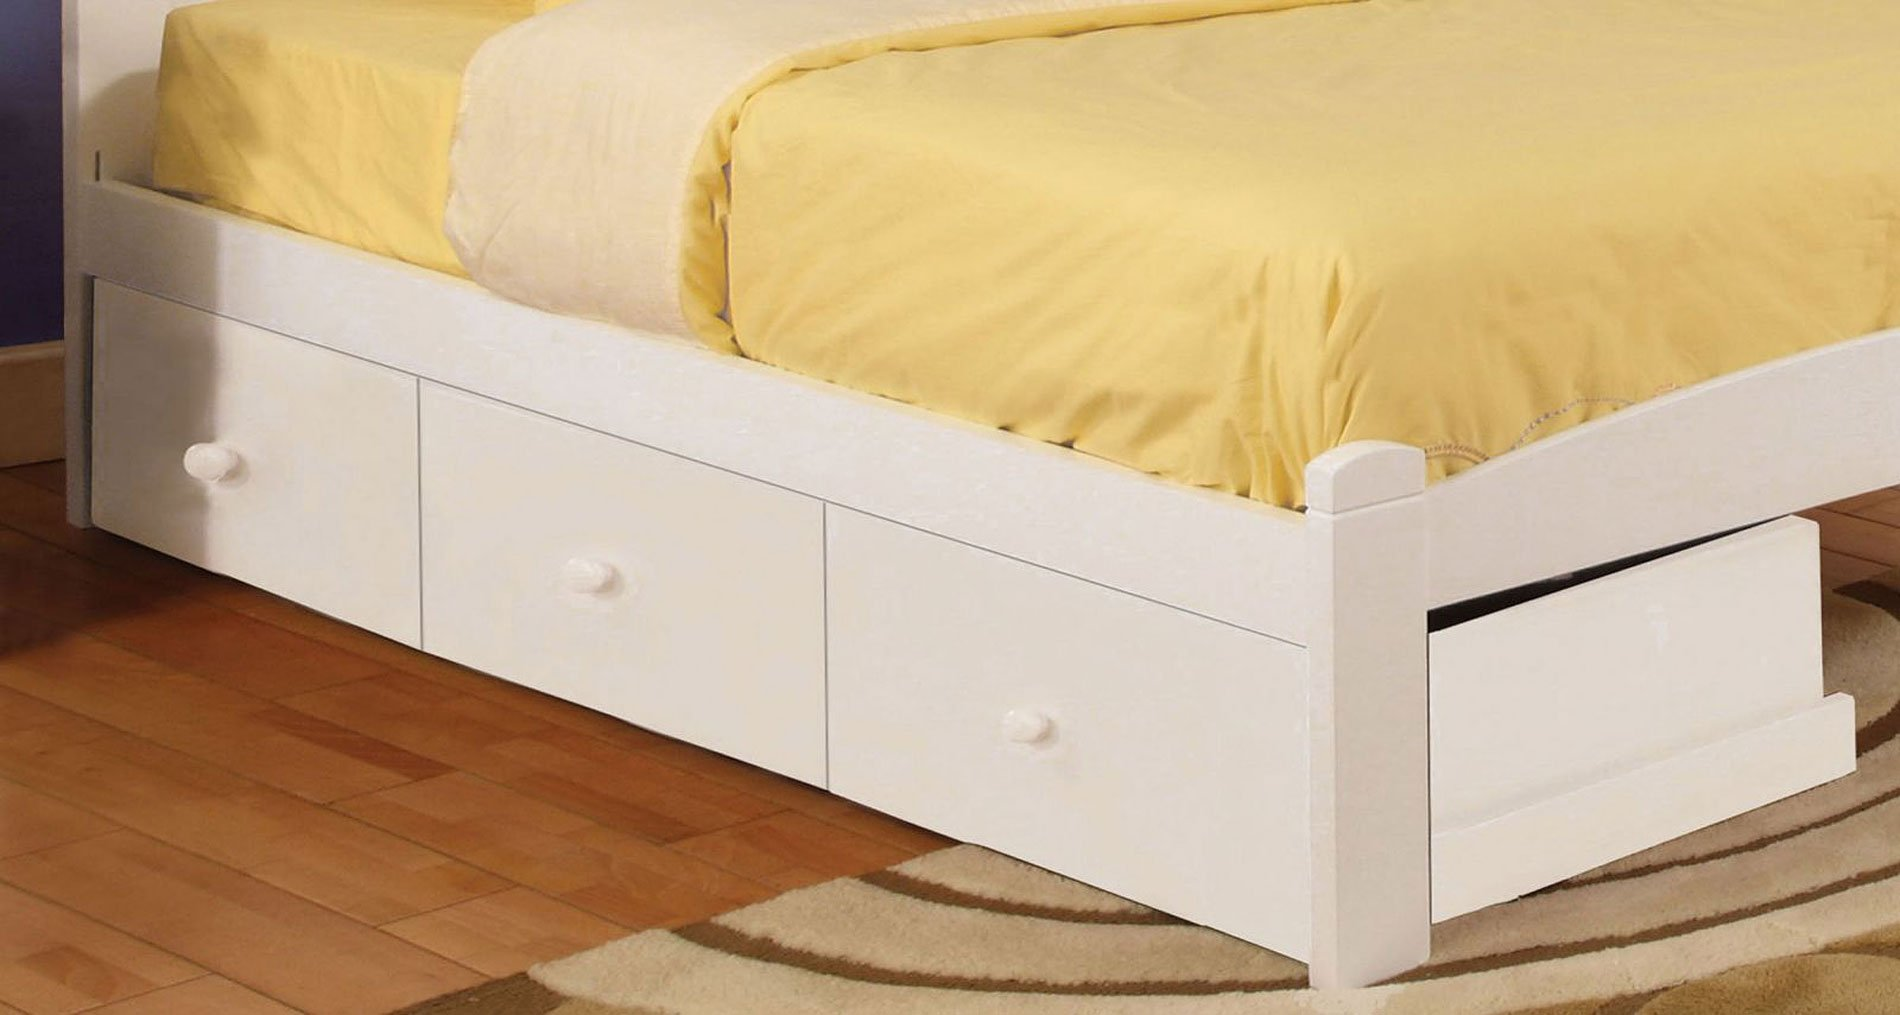 Bedroom Furniture Canberra Omnus Youth Bedroom Set W Canberra Bunk Bed White